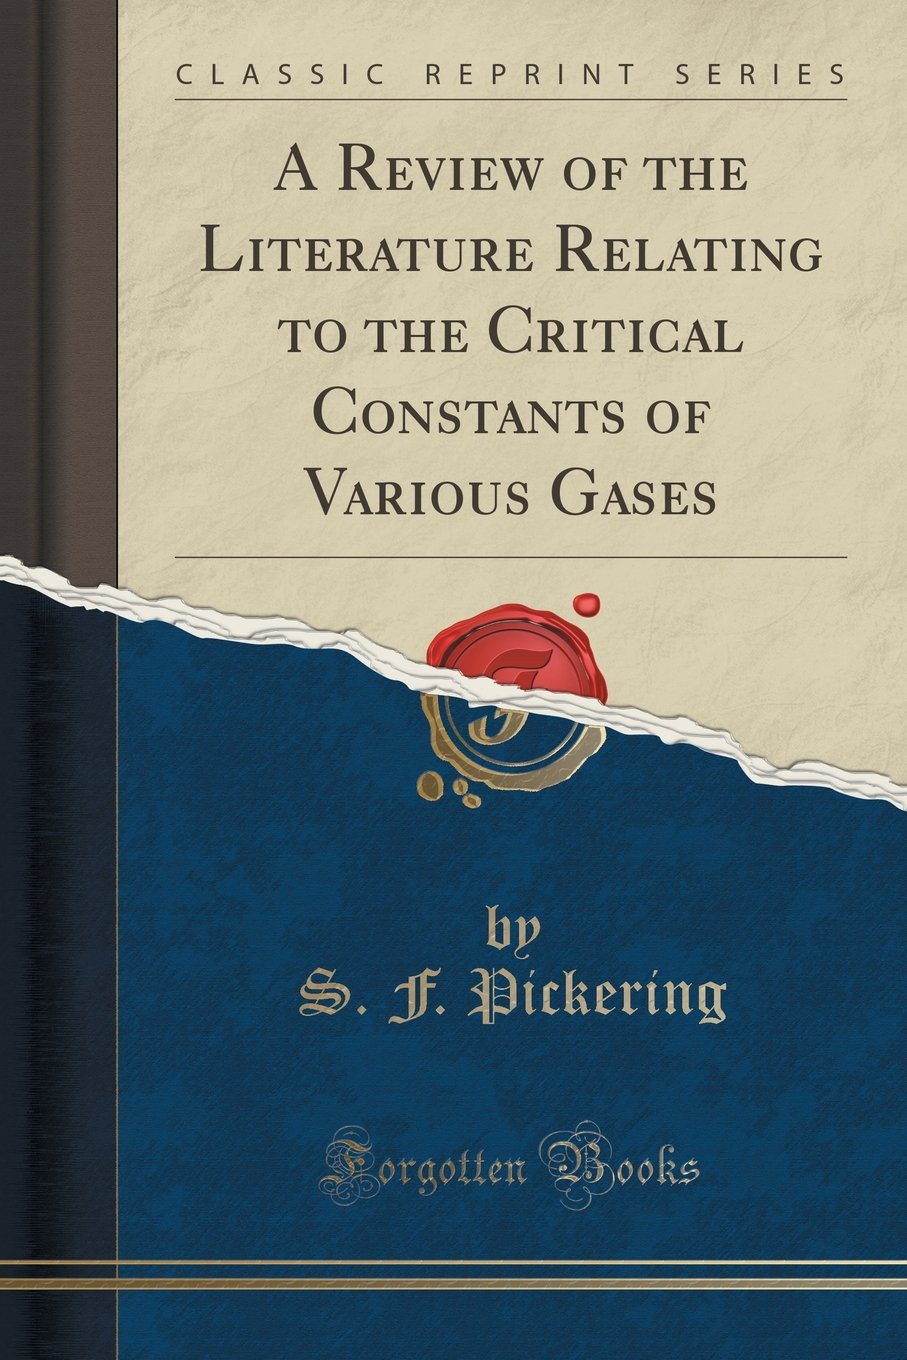 A Review of the Literature Relating to the Critical Constants of Various Gases (Classic Reprint) ebook